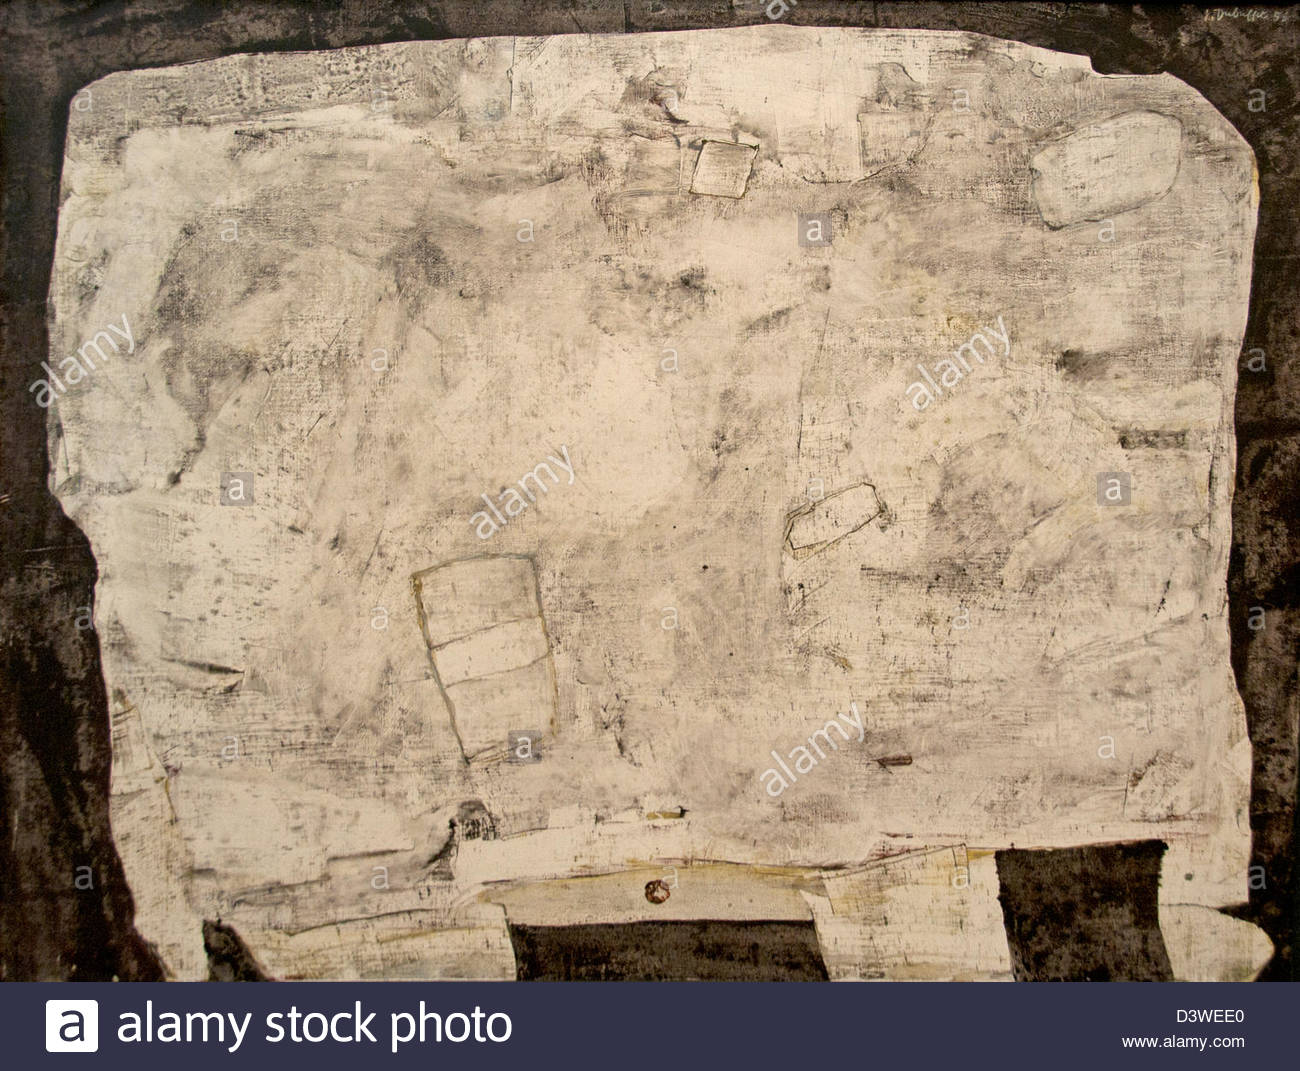 Avec tiroir table 1956 Jean Dubuffet Français France 1901-1985 Photo Stock